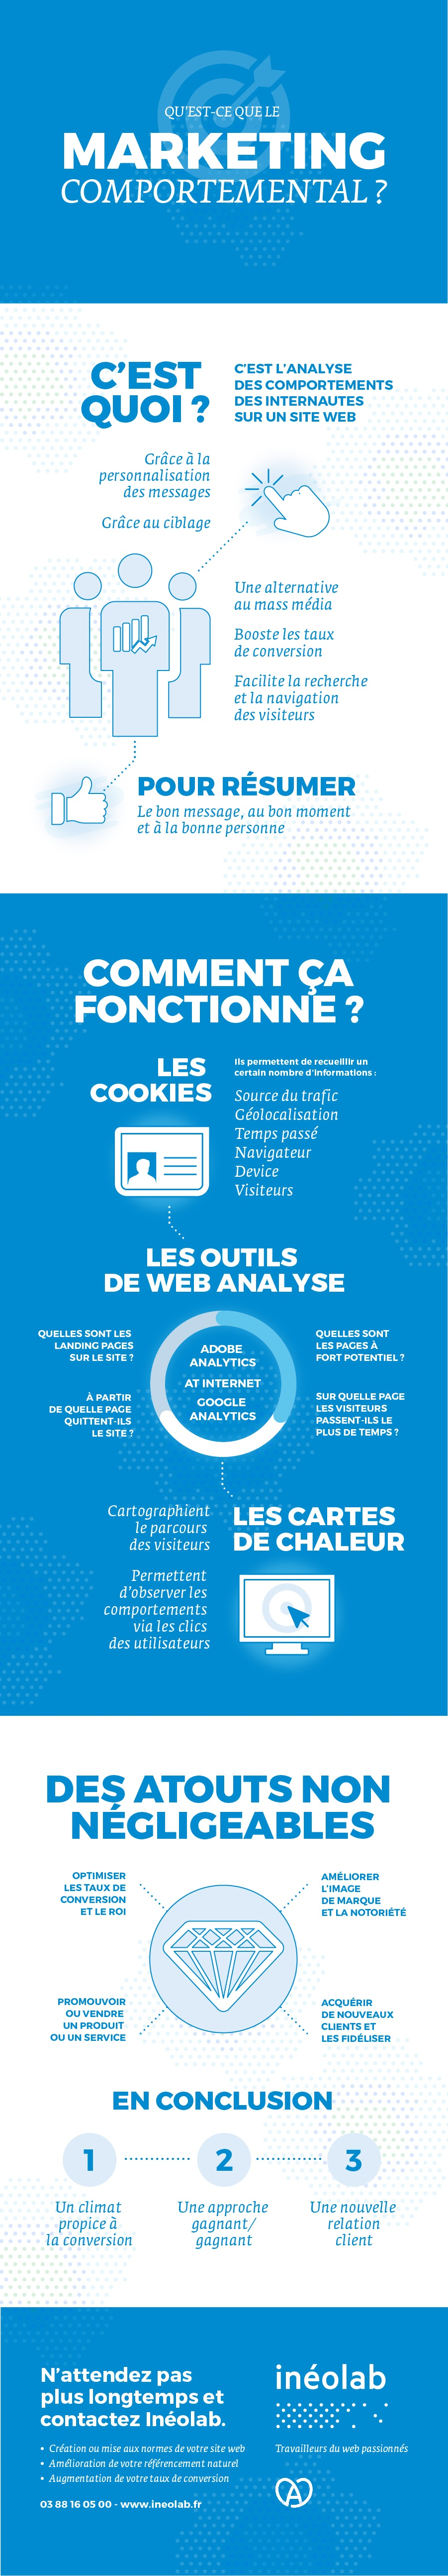 infographie marketing comportemental